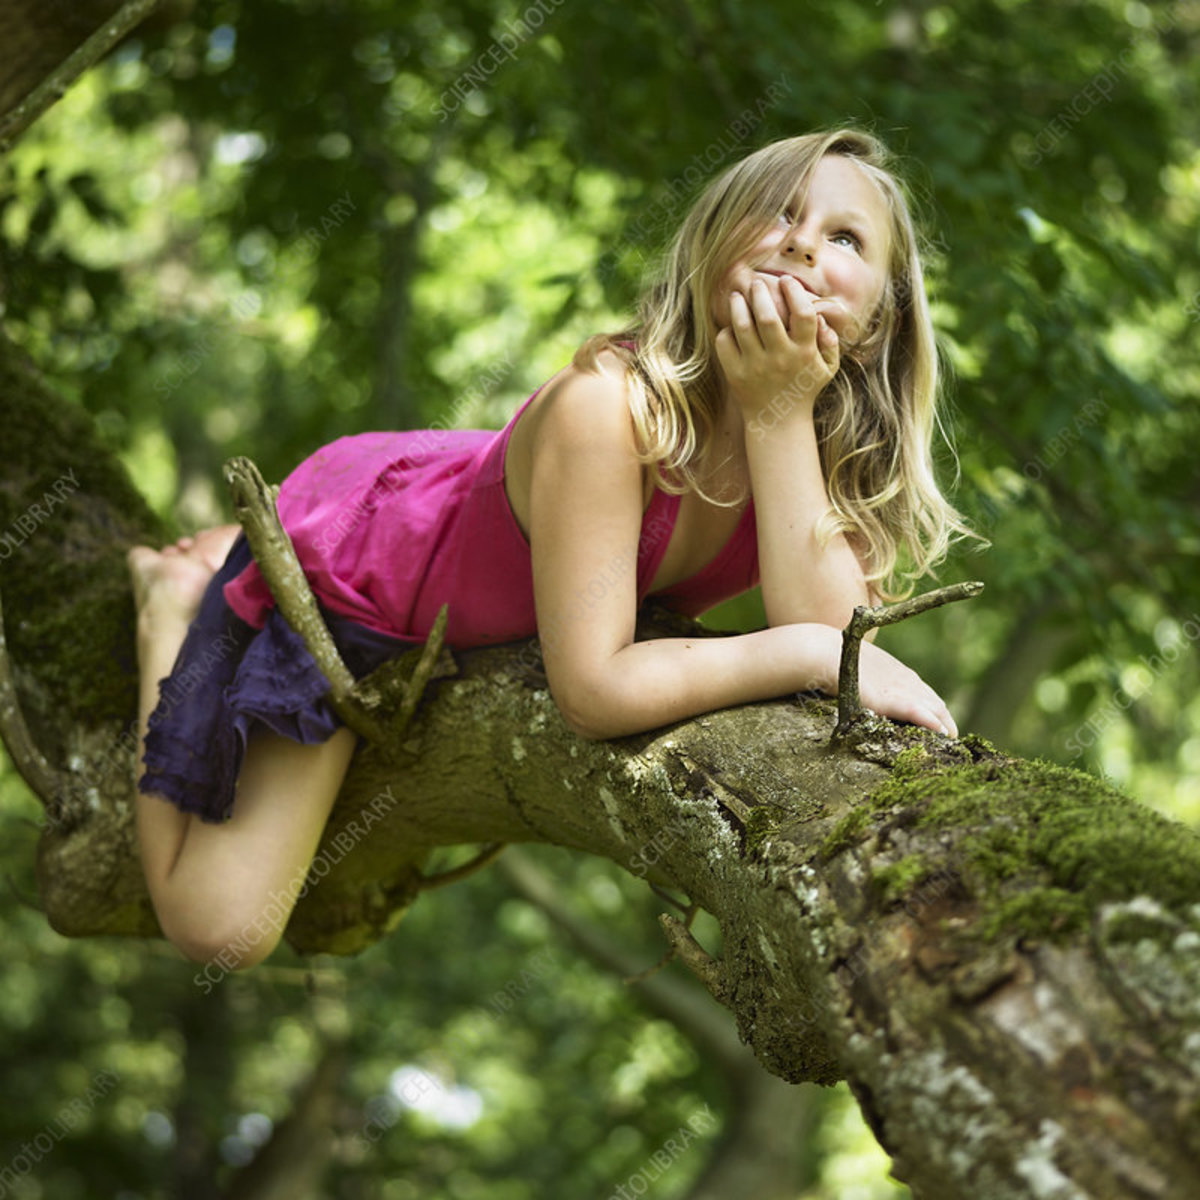 Look! Even girls can climb trees.